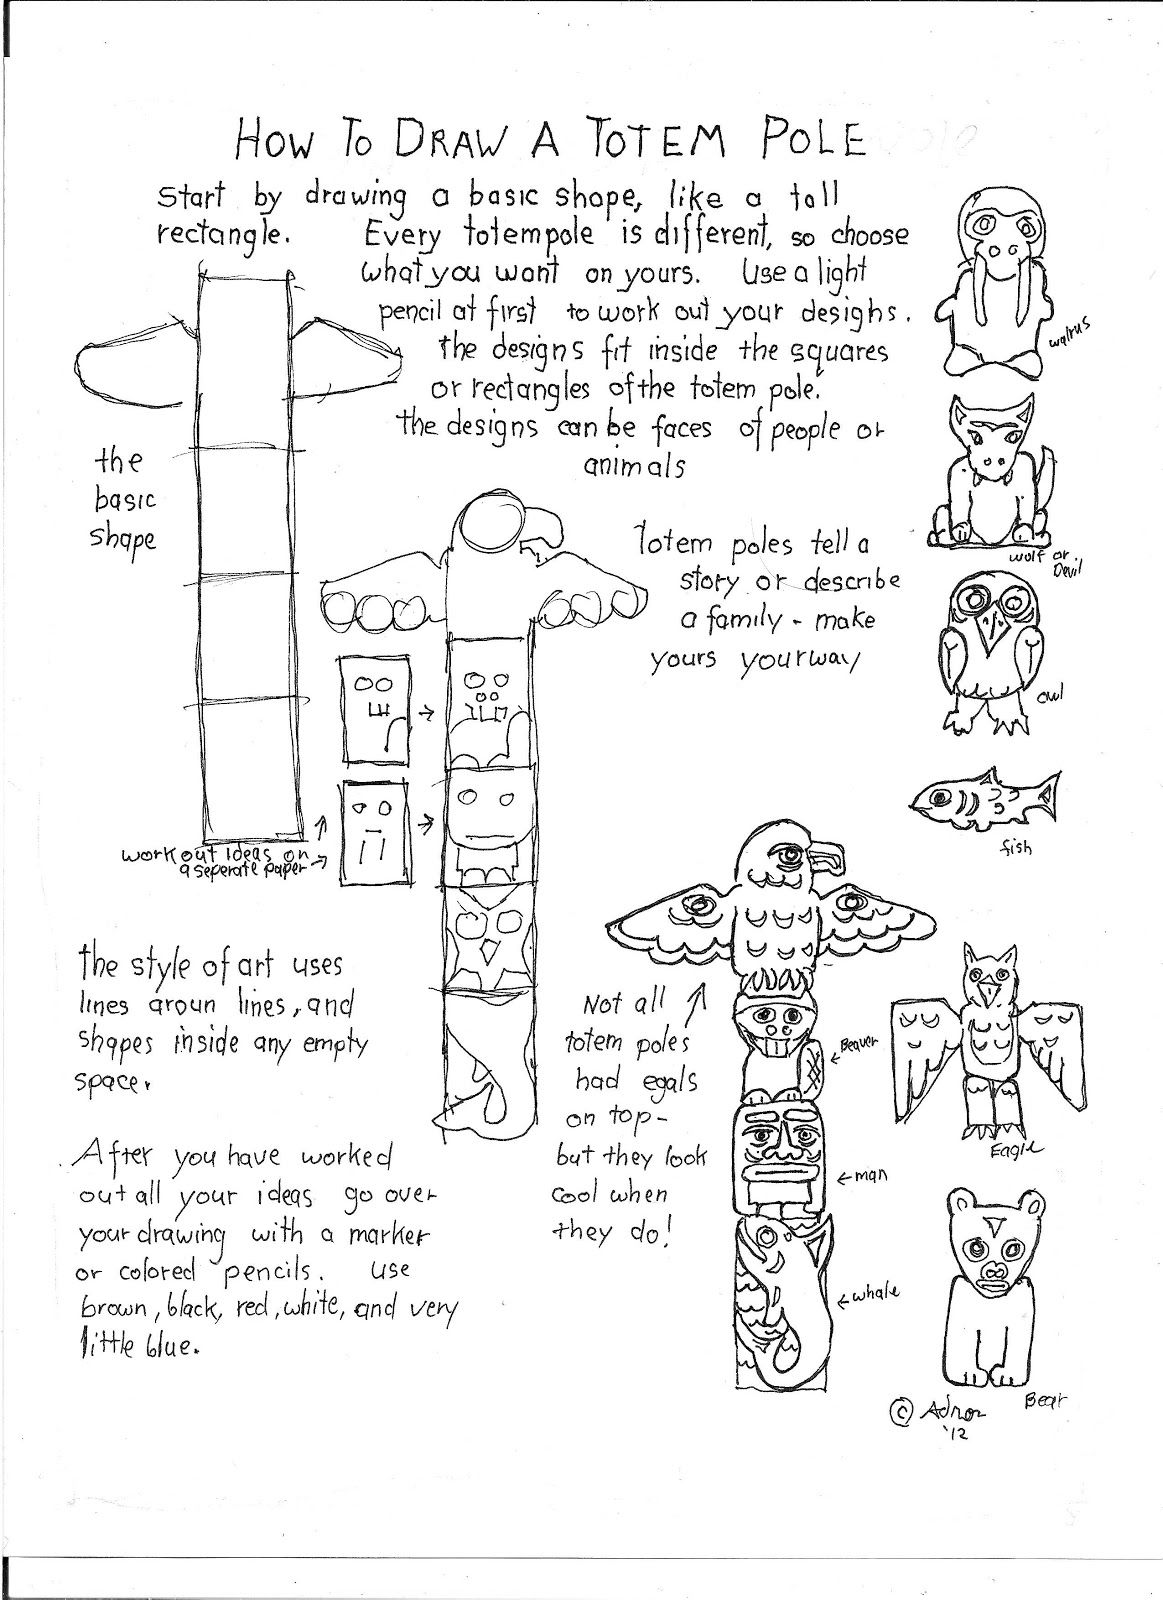 How To Draw A Totem Pole Printable Worksheet